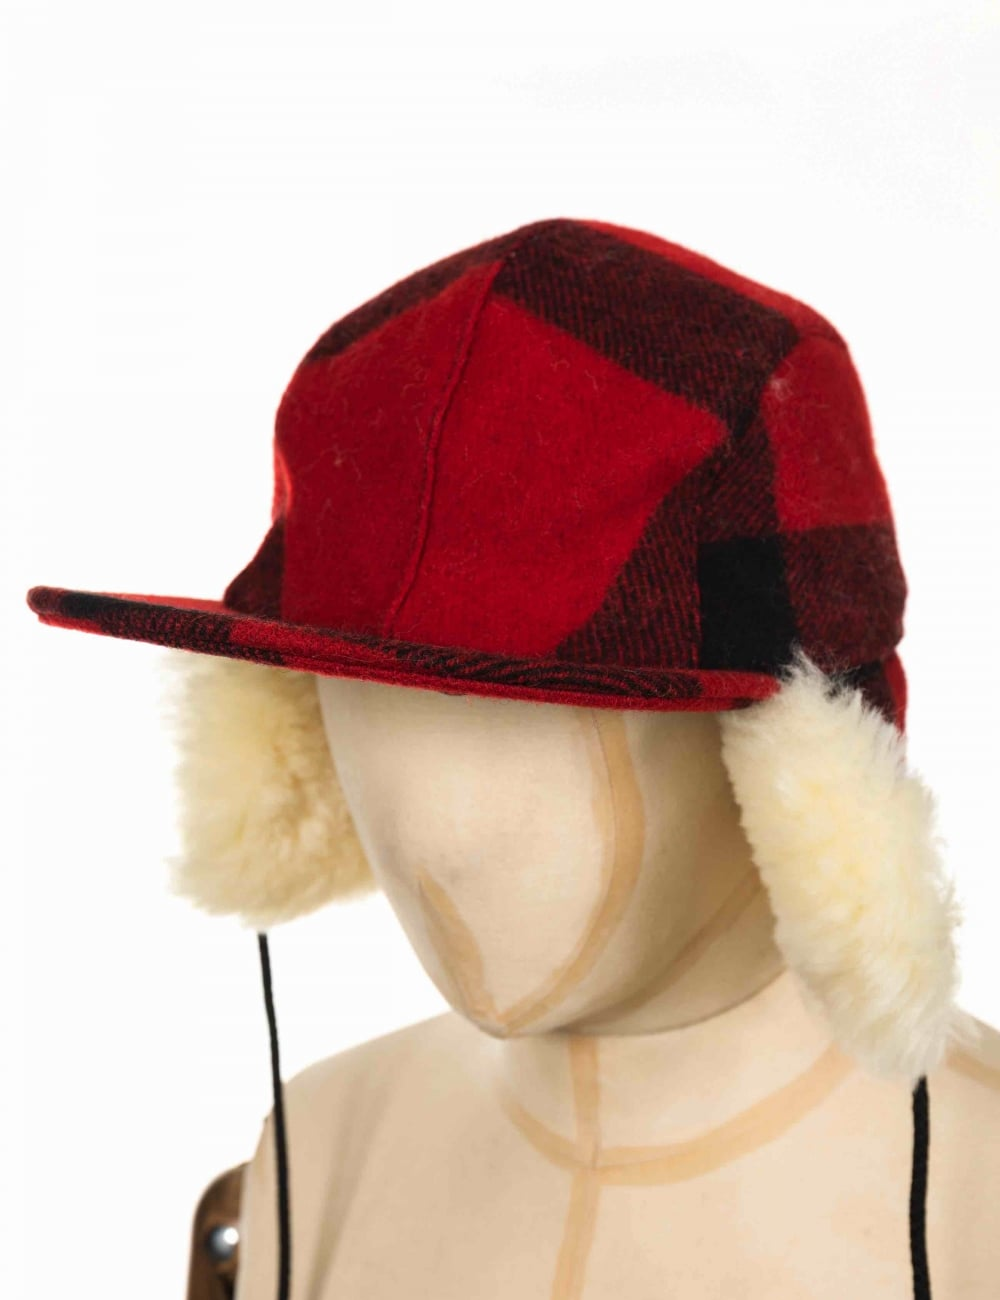 f4542739eff Filson Double Mackinaw Cap - Red Black - Hat Shop from Fat Buddha ...